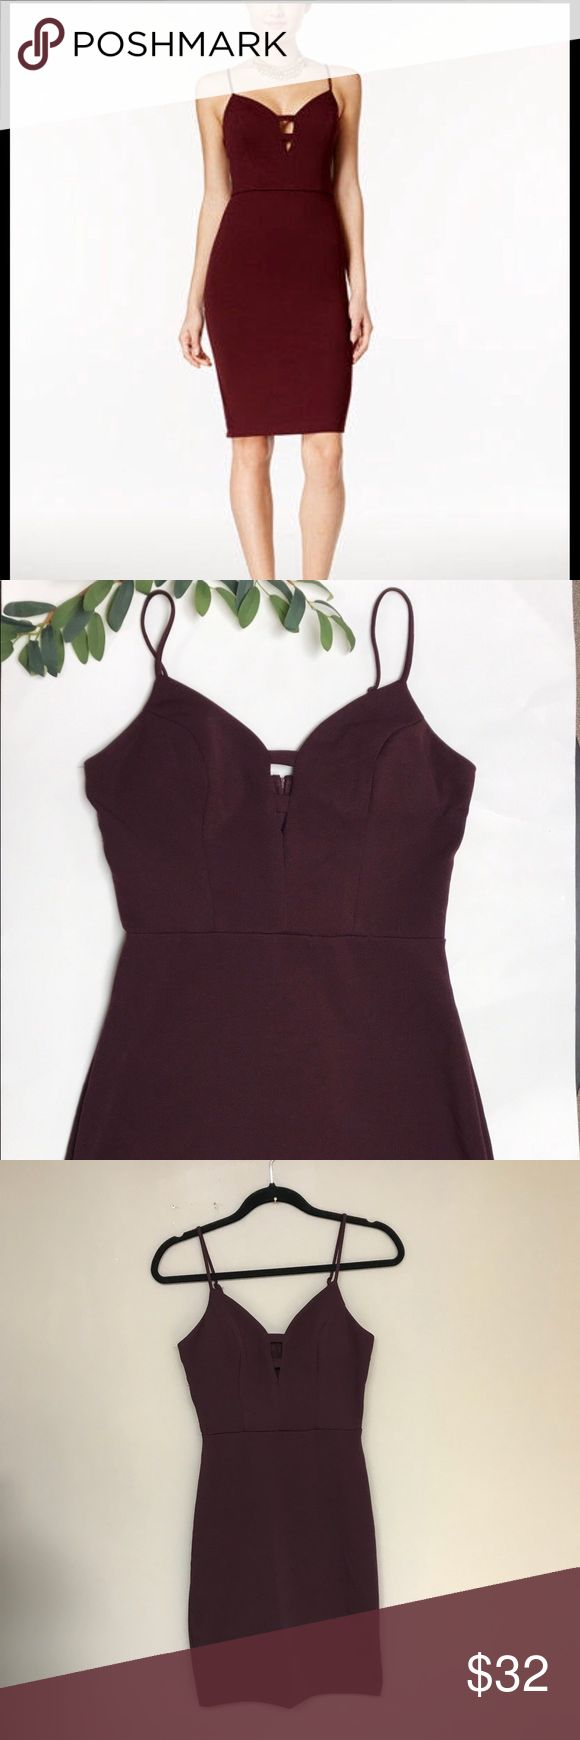 "B Darlin • wine colored dress Super cute and like new! Only worn one time!!  Currently on Macy's website!!  B.Darlin sexy wine colored dress! Perfect for fall season or even the holidays! Would be super cute on its own or with a fur jacket over top!      Size 5/6   Approx measurements:top of bust to hemline- 33"".                      Armpit to armpit 14 1/2"" B Darlin Dresses"